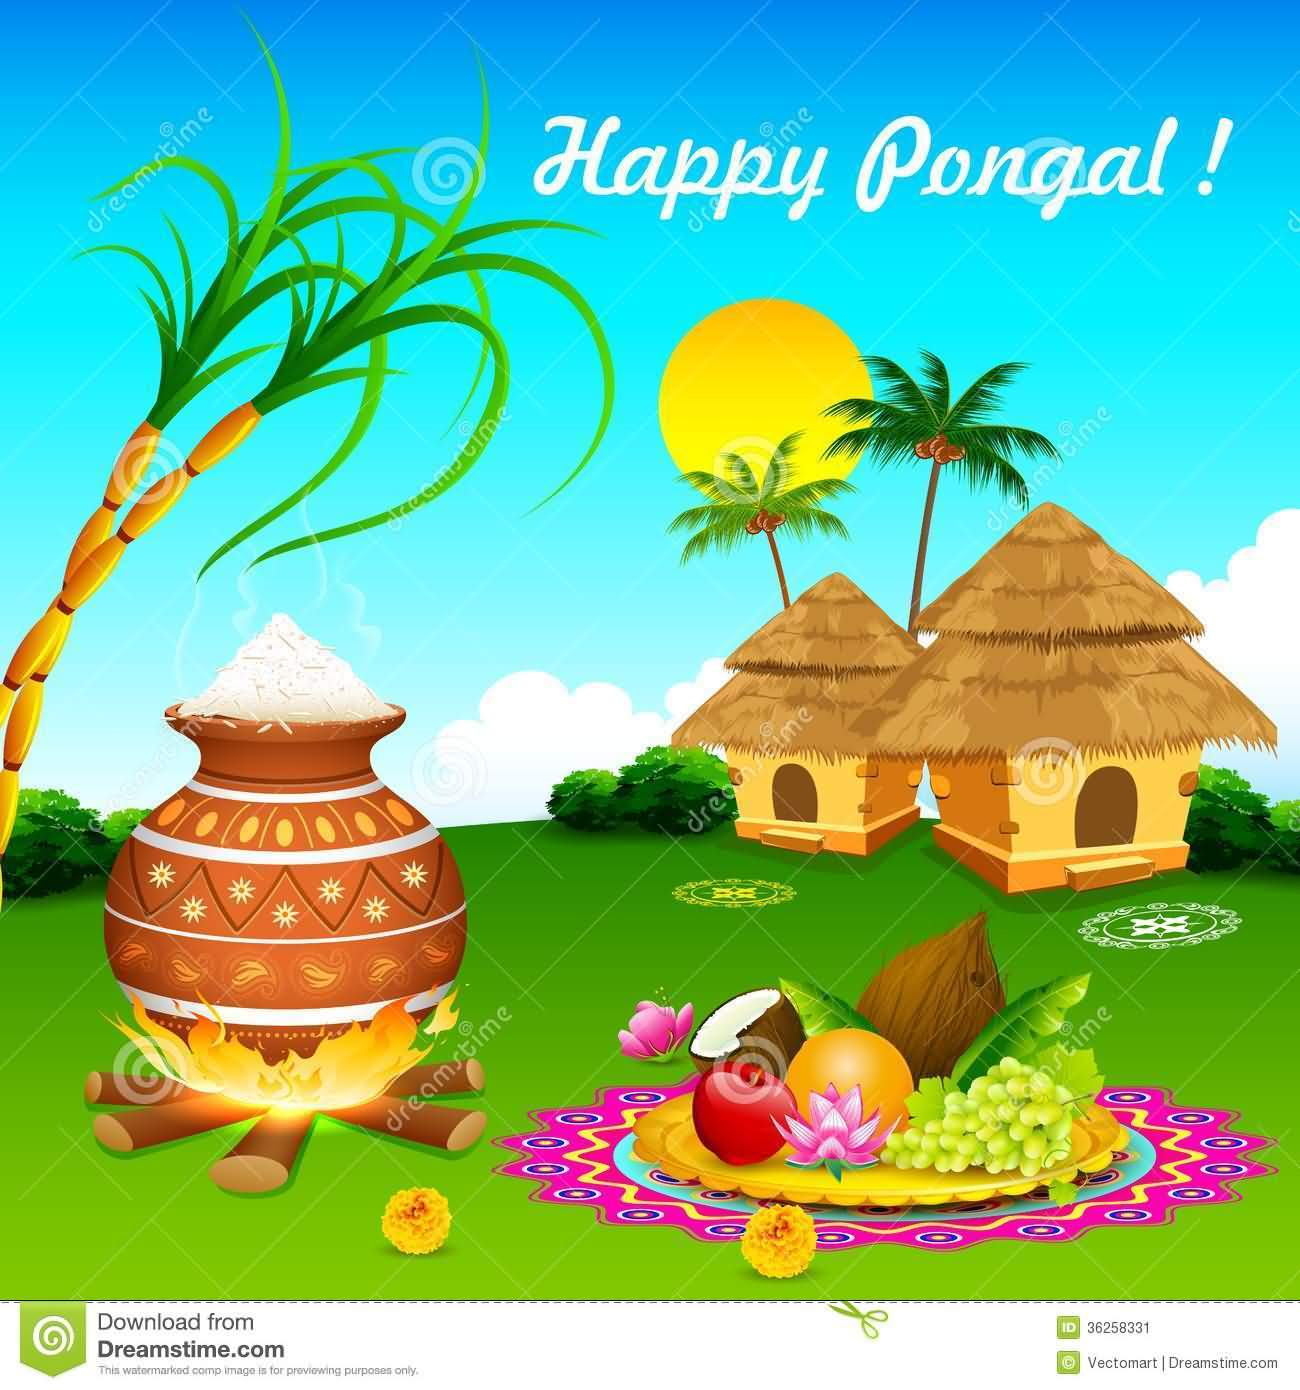 Telugu Funny Quotes Wallpapers Happy Pongal Card